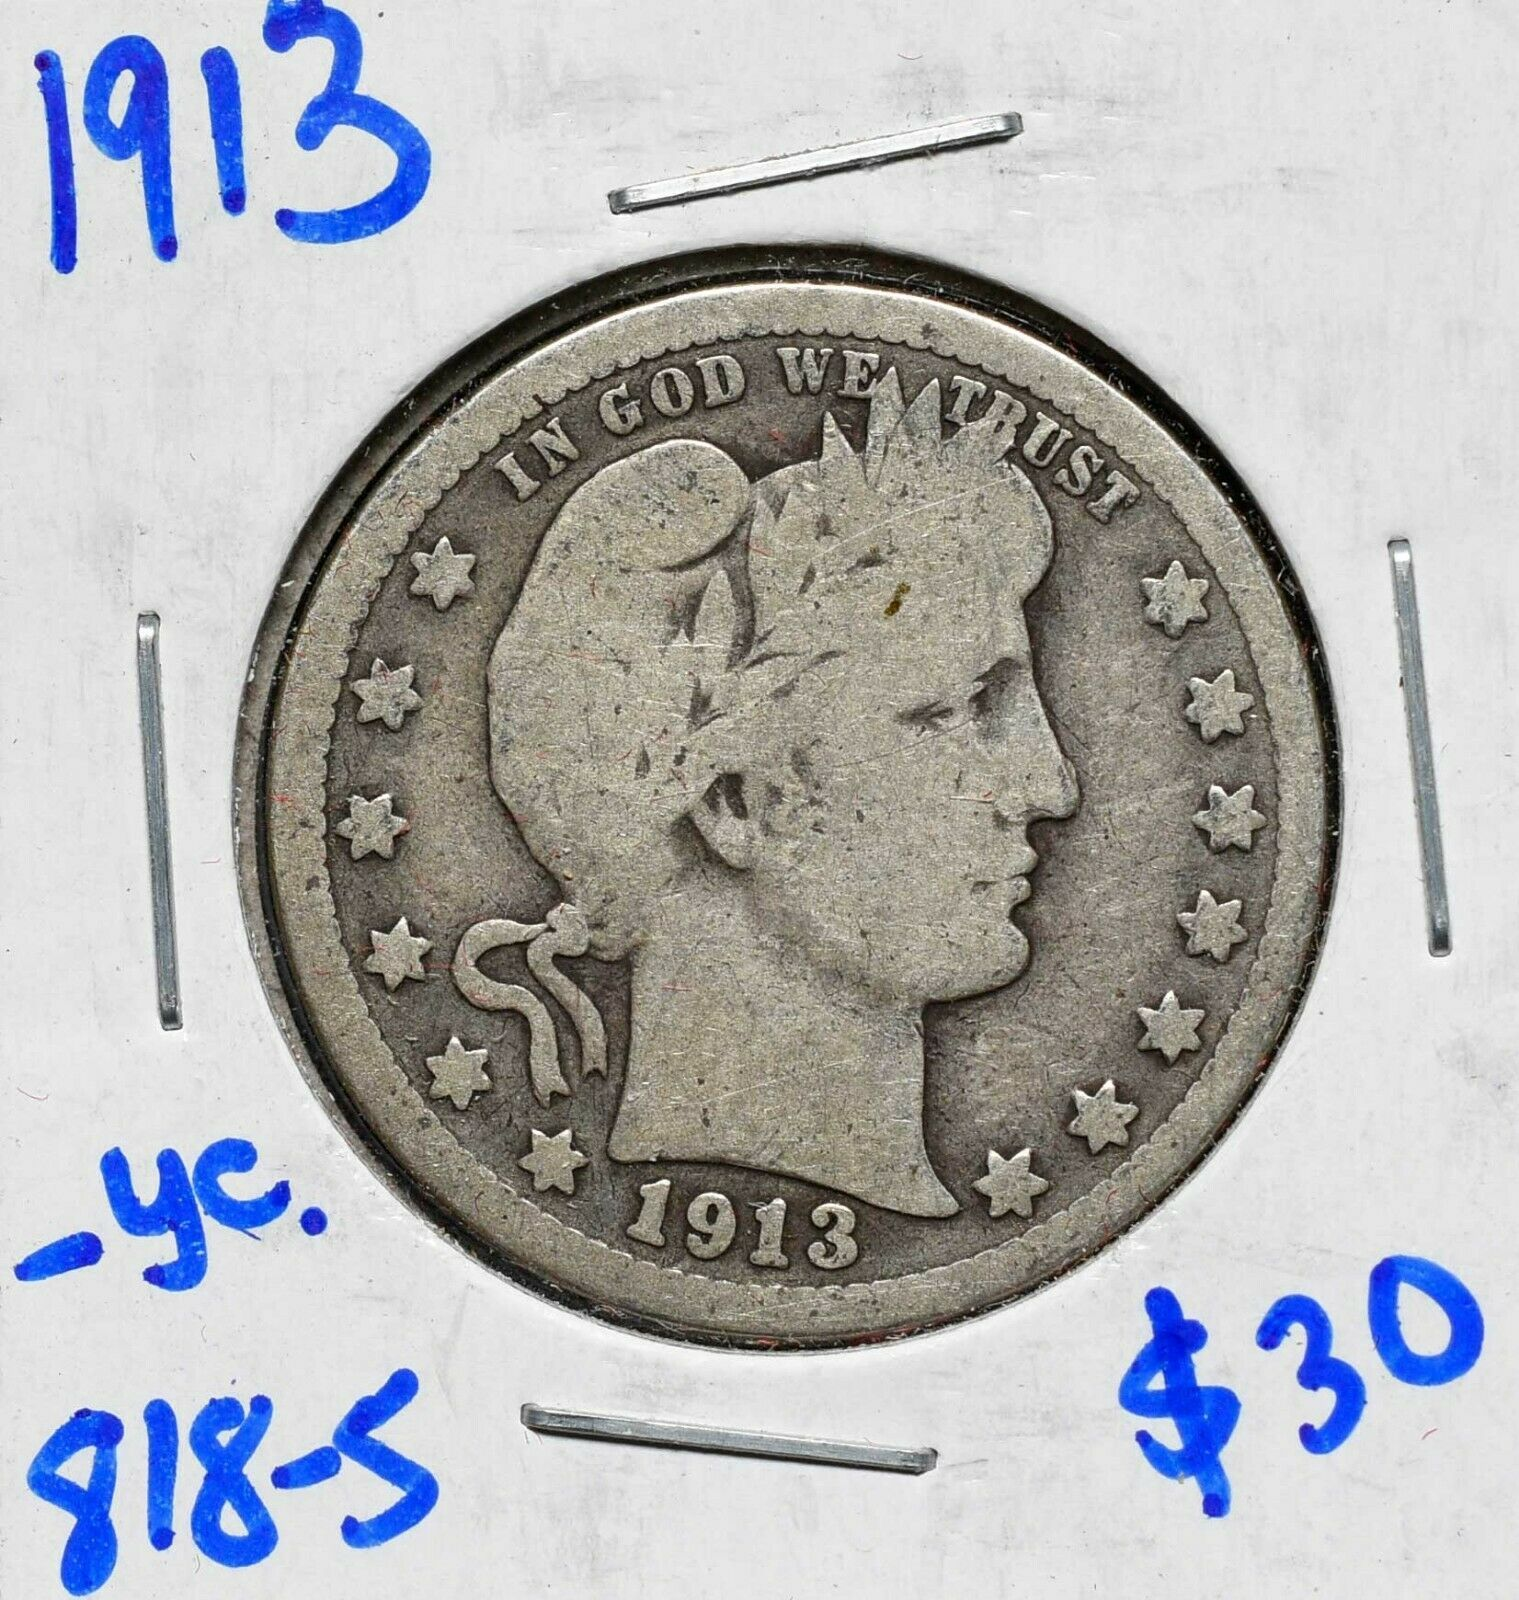 1913 Silver Barber Quarter Dollar 25¢ Coin Lot# 818-5